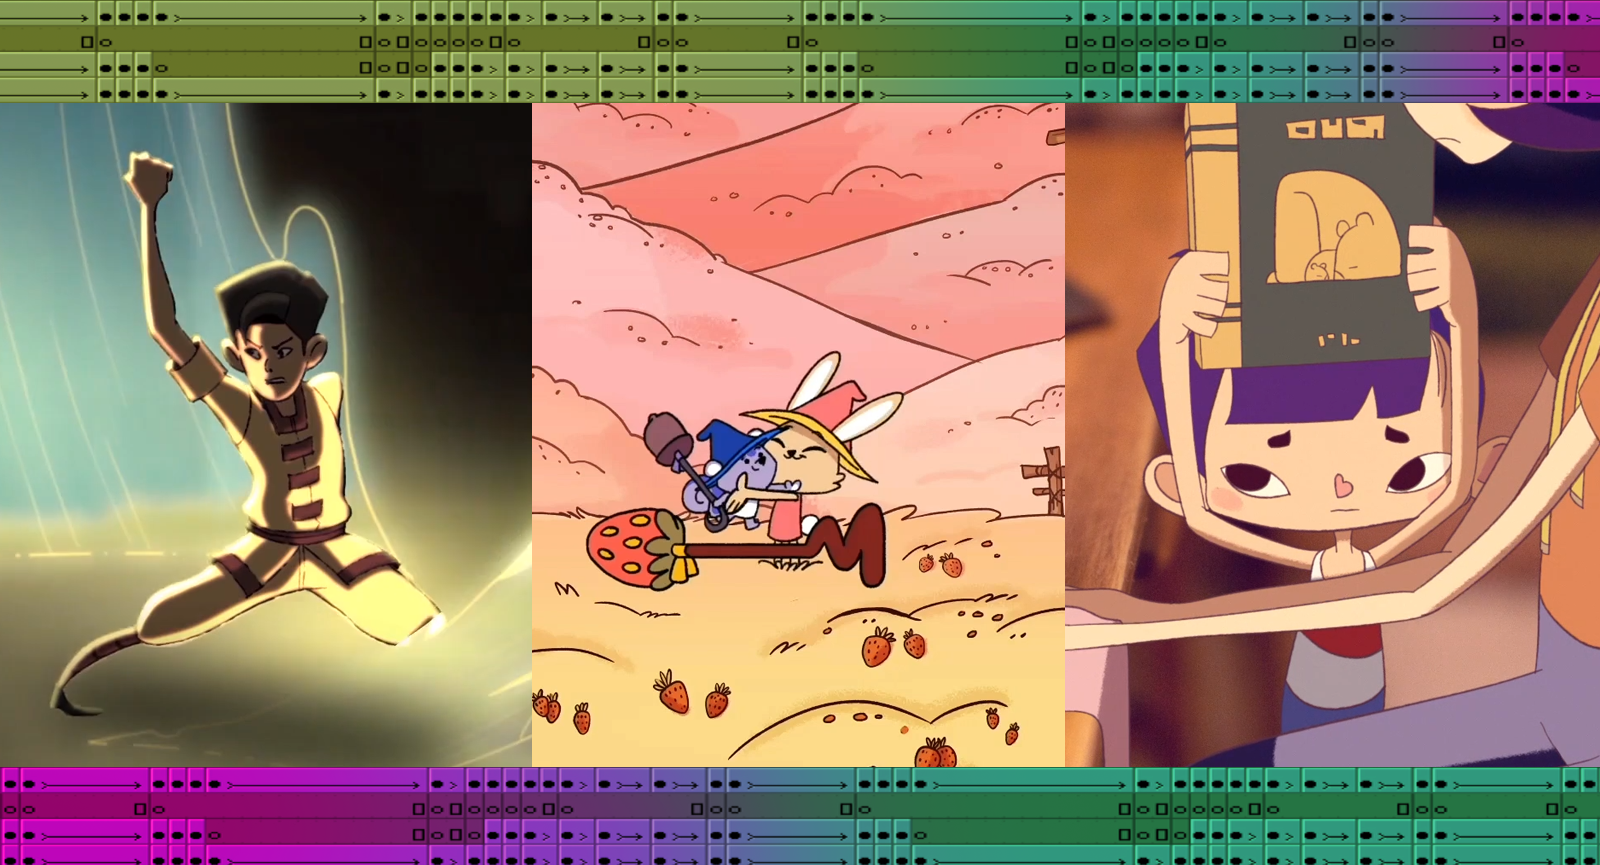 A collage of stills from three animated films featured in Reel Asian's Wee Asian program. The left still from FIRST BORN depicts a young boy performing kung fu in yellow, the middle from TEST FLIGHT depicts a bunny and squirrel character hugging on a field with pink mountains in the background, and the right still from FELT LOVE shows a little boy holding up a book to his mother. On the top and bottom are runners showing animation sequencing programs.